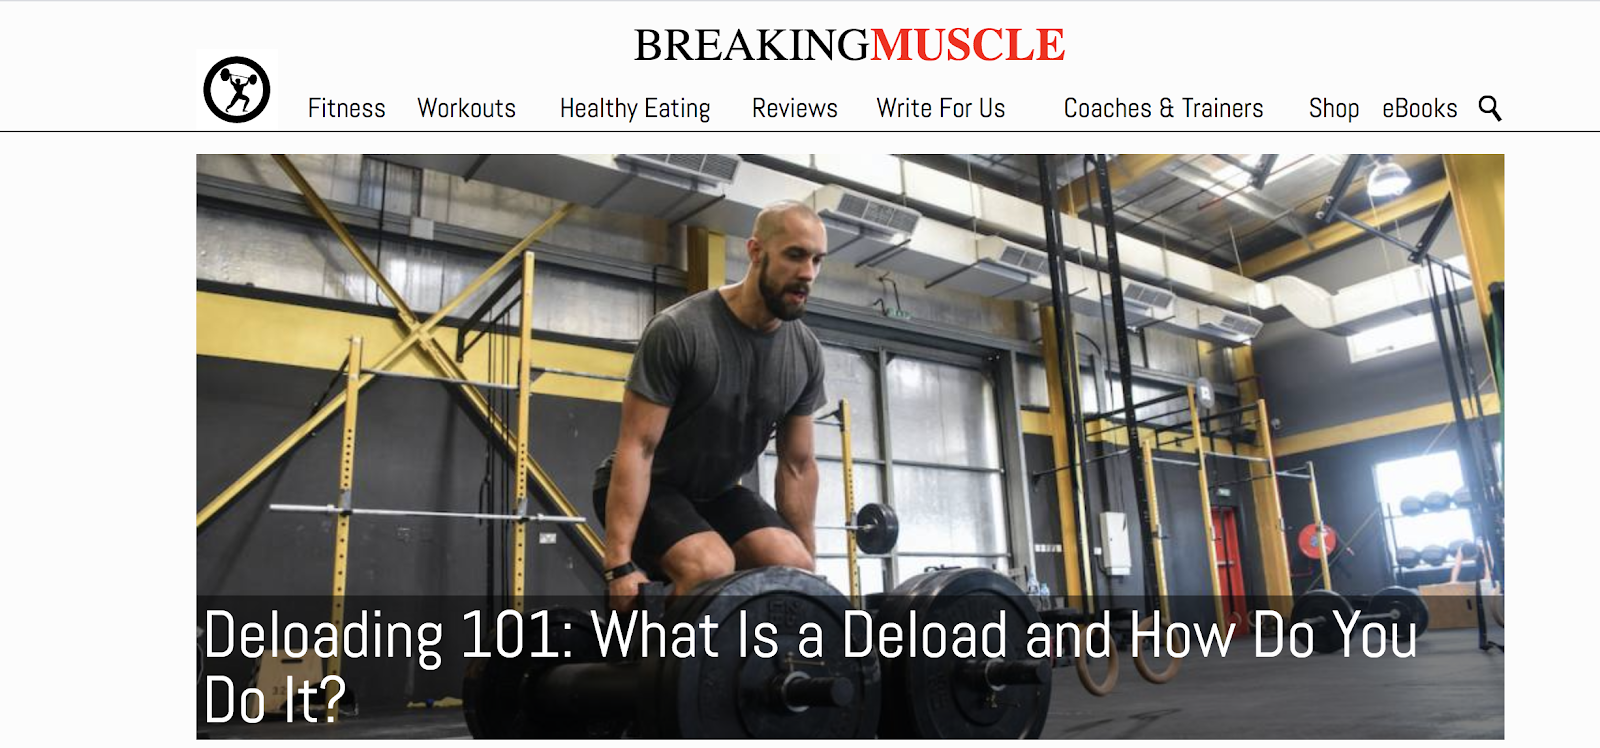 Breaking Muscle Example of How to Name a Blog Well (Screenshot)